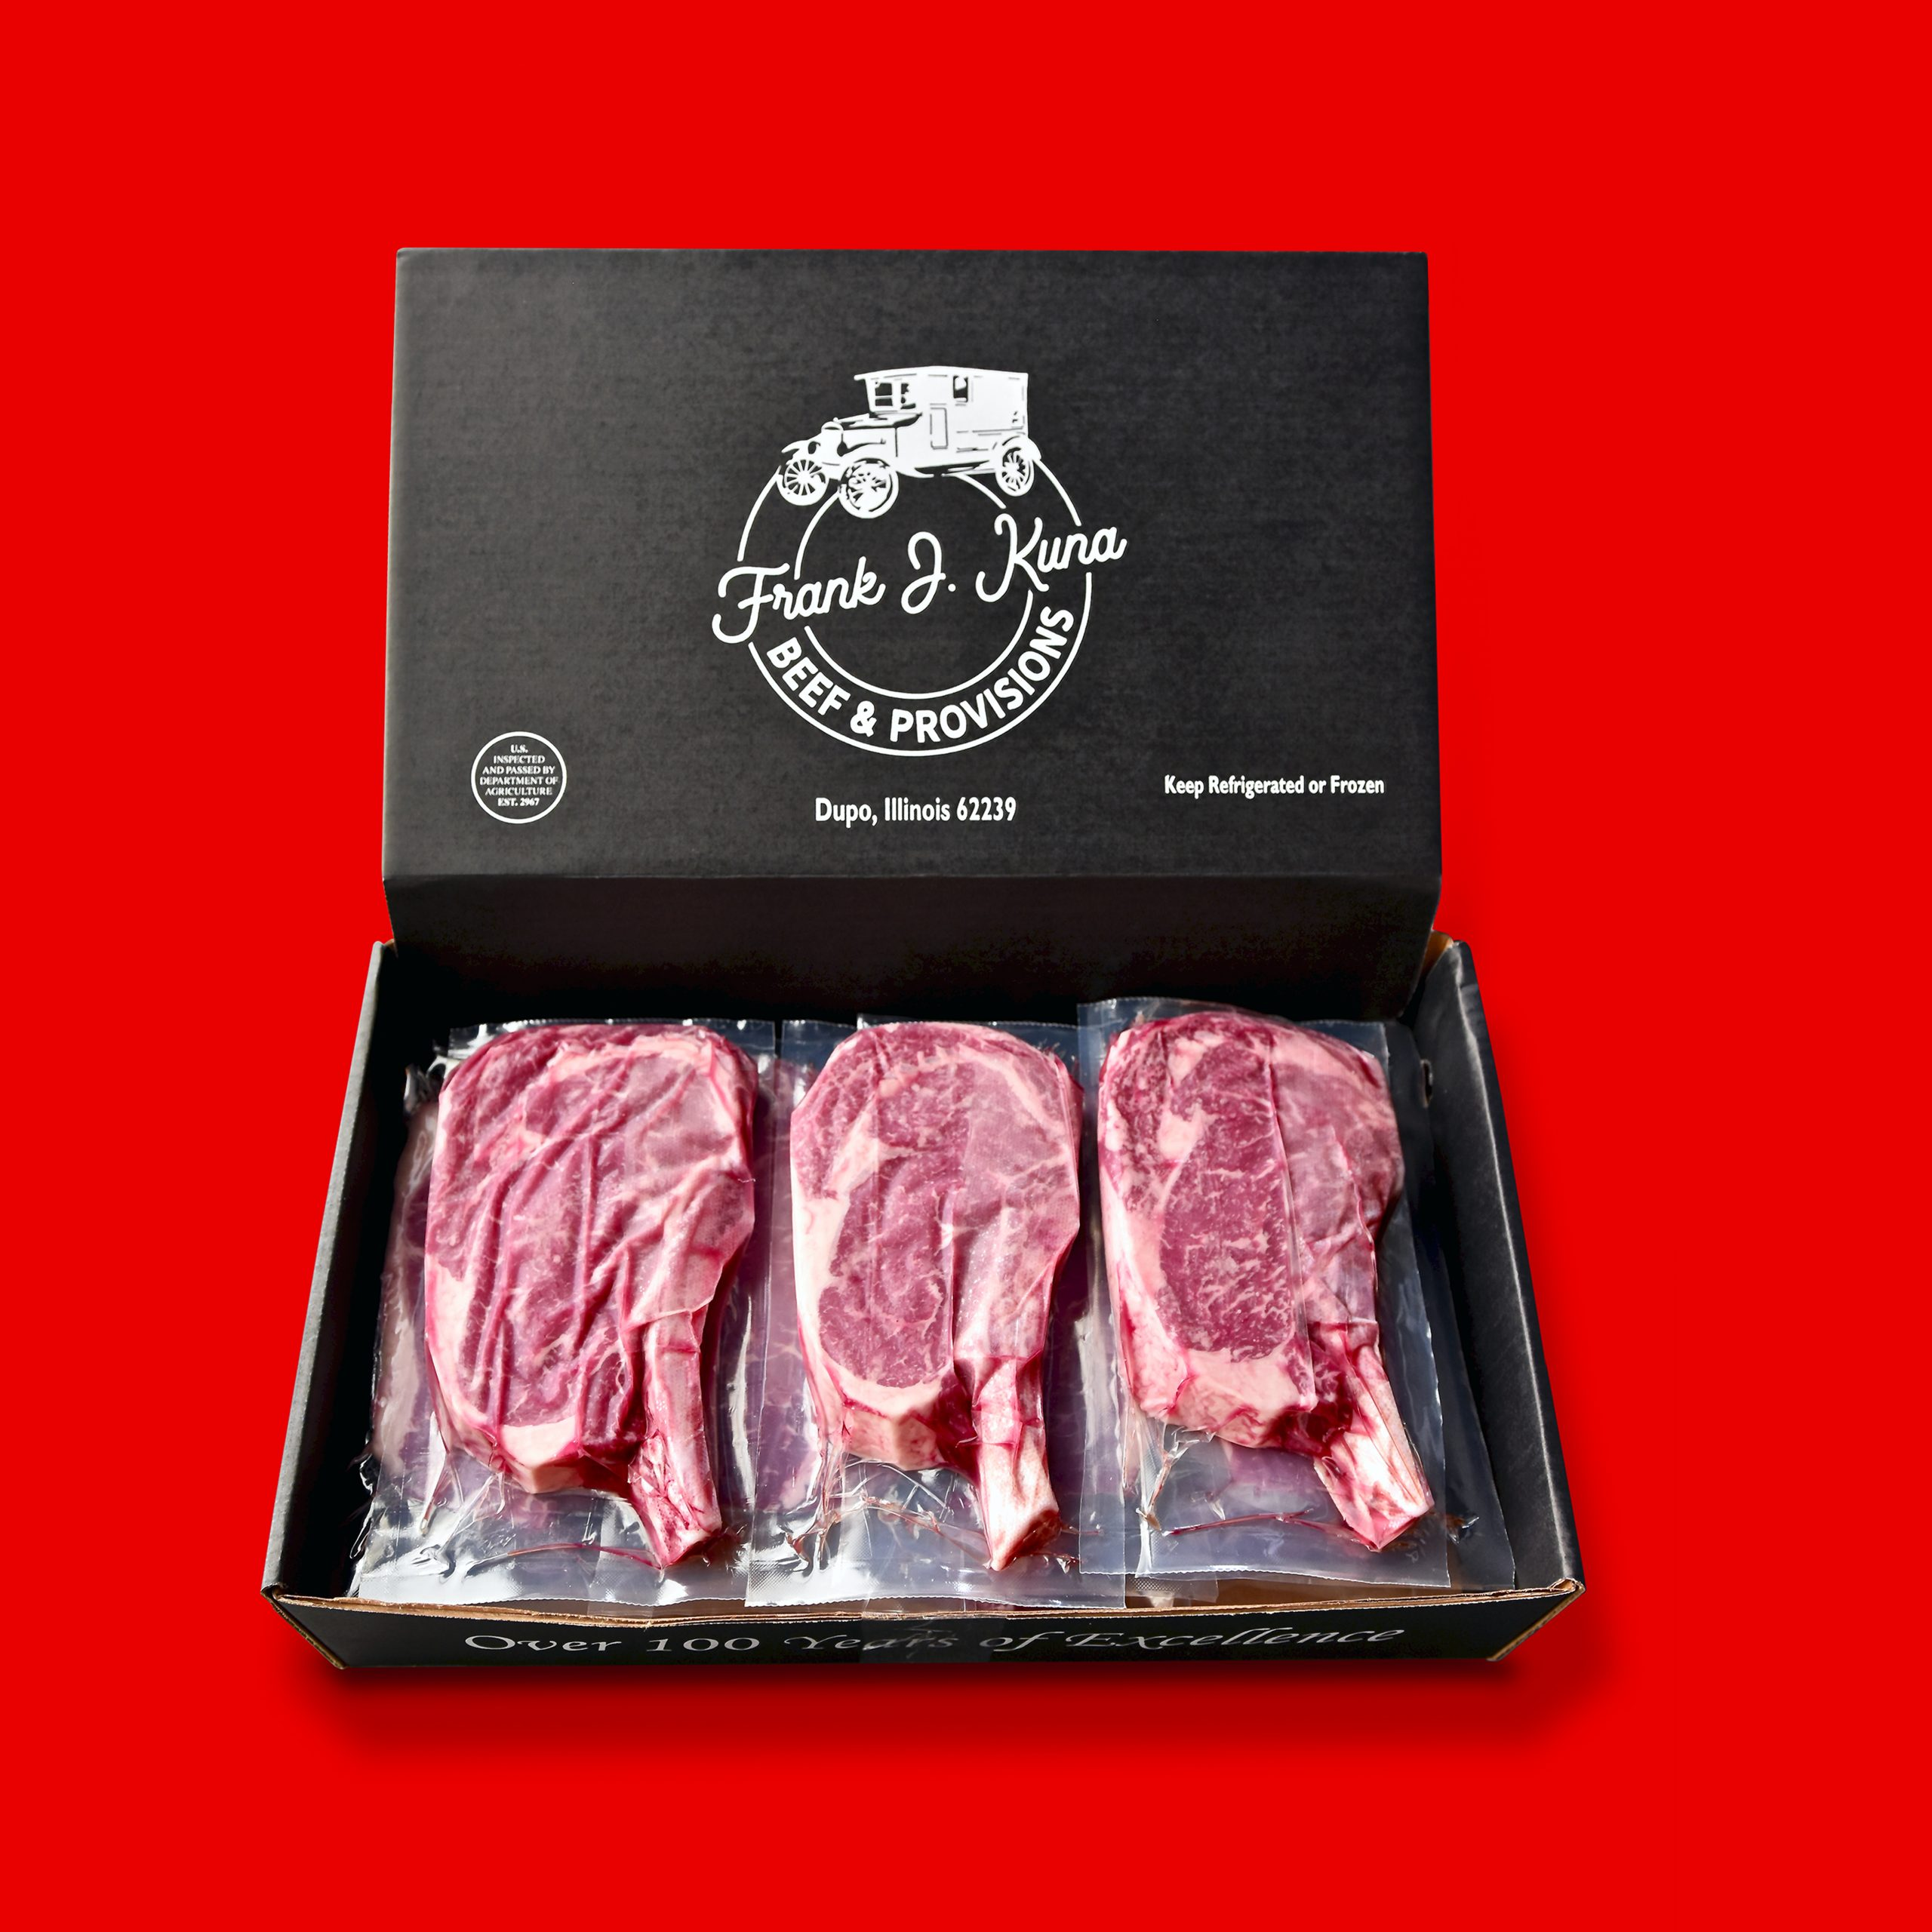 Frank J Kuna packaged steaks over red background